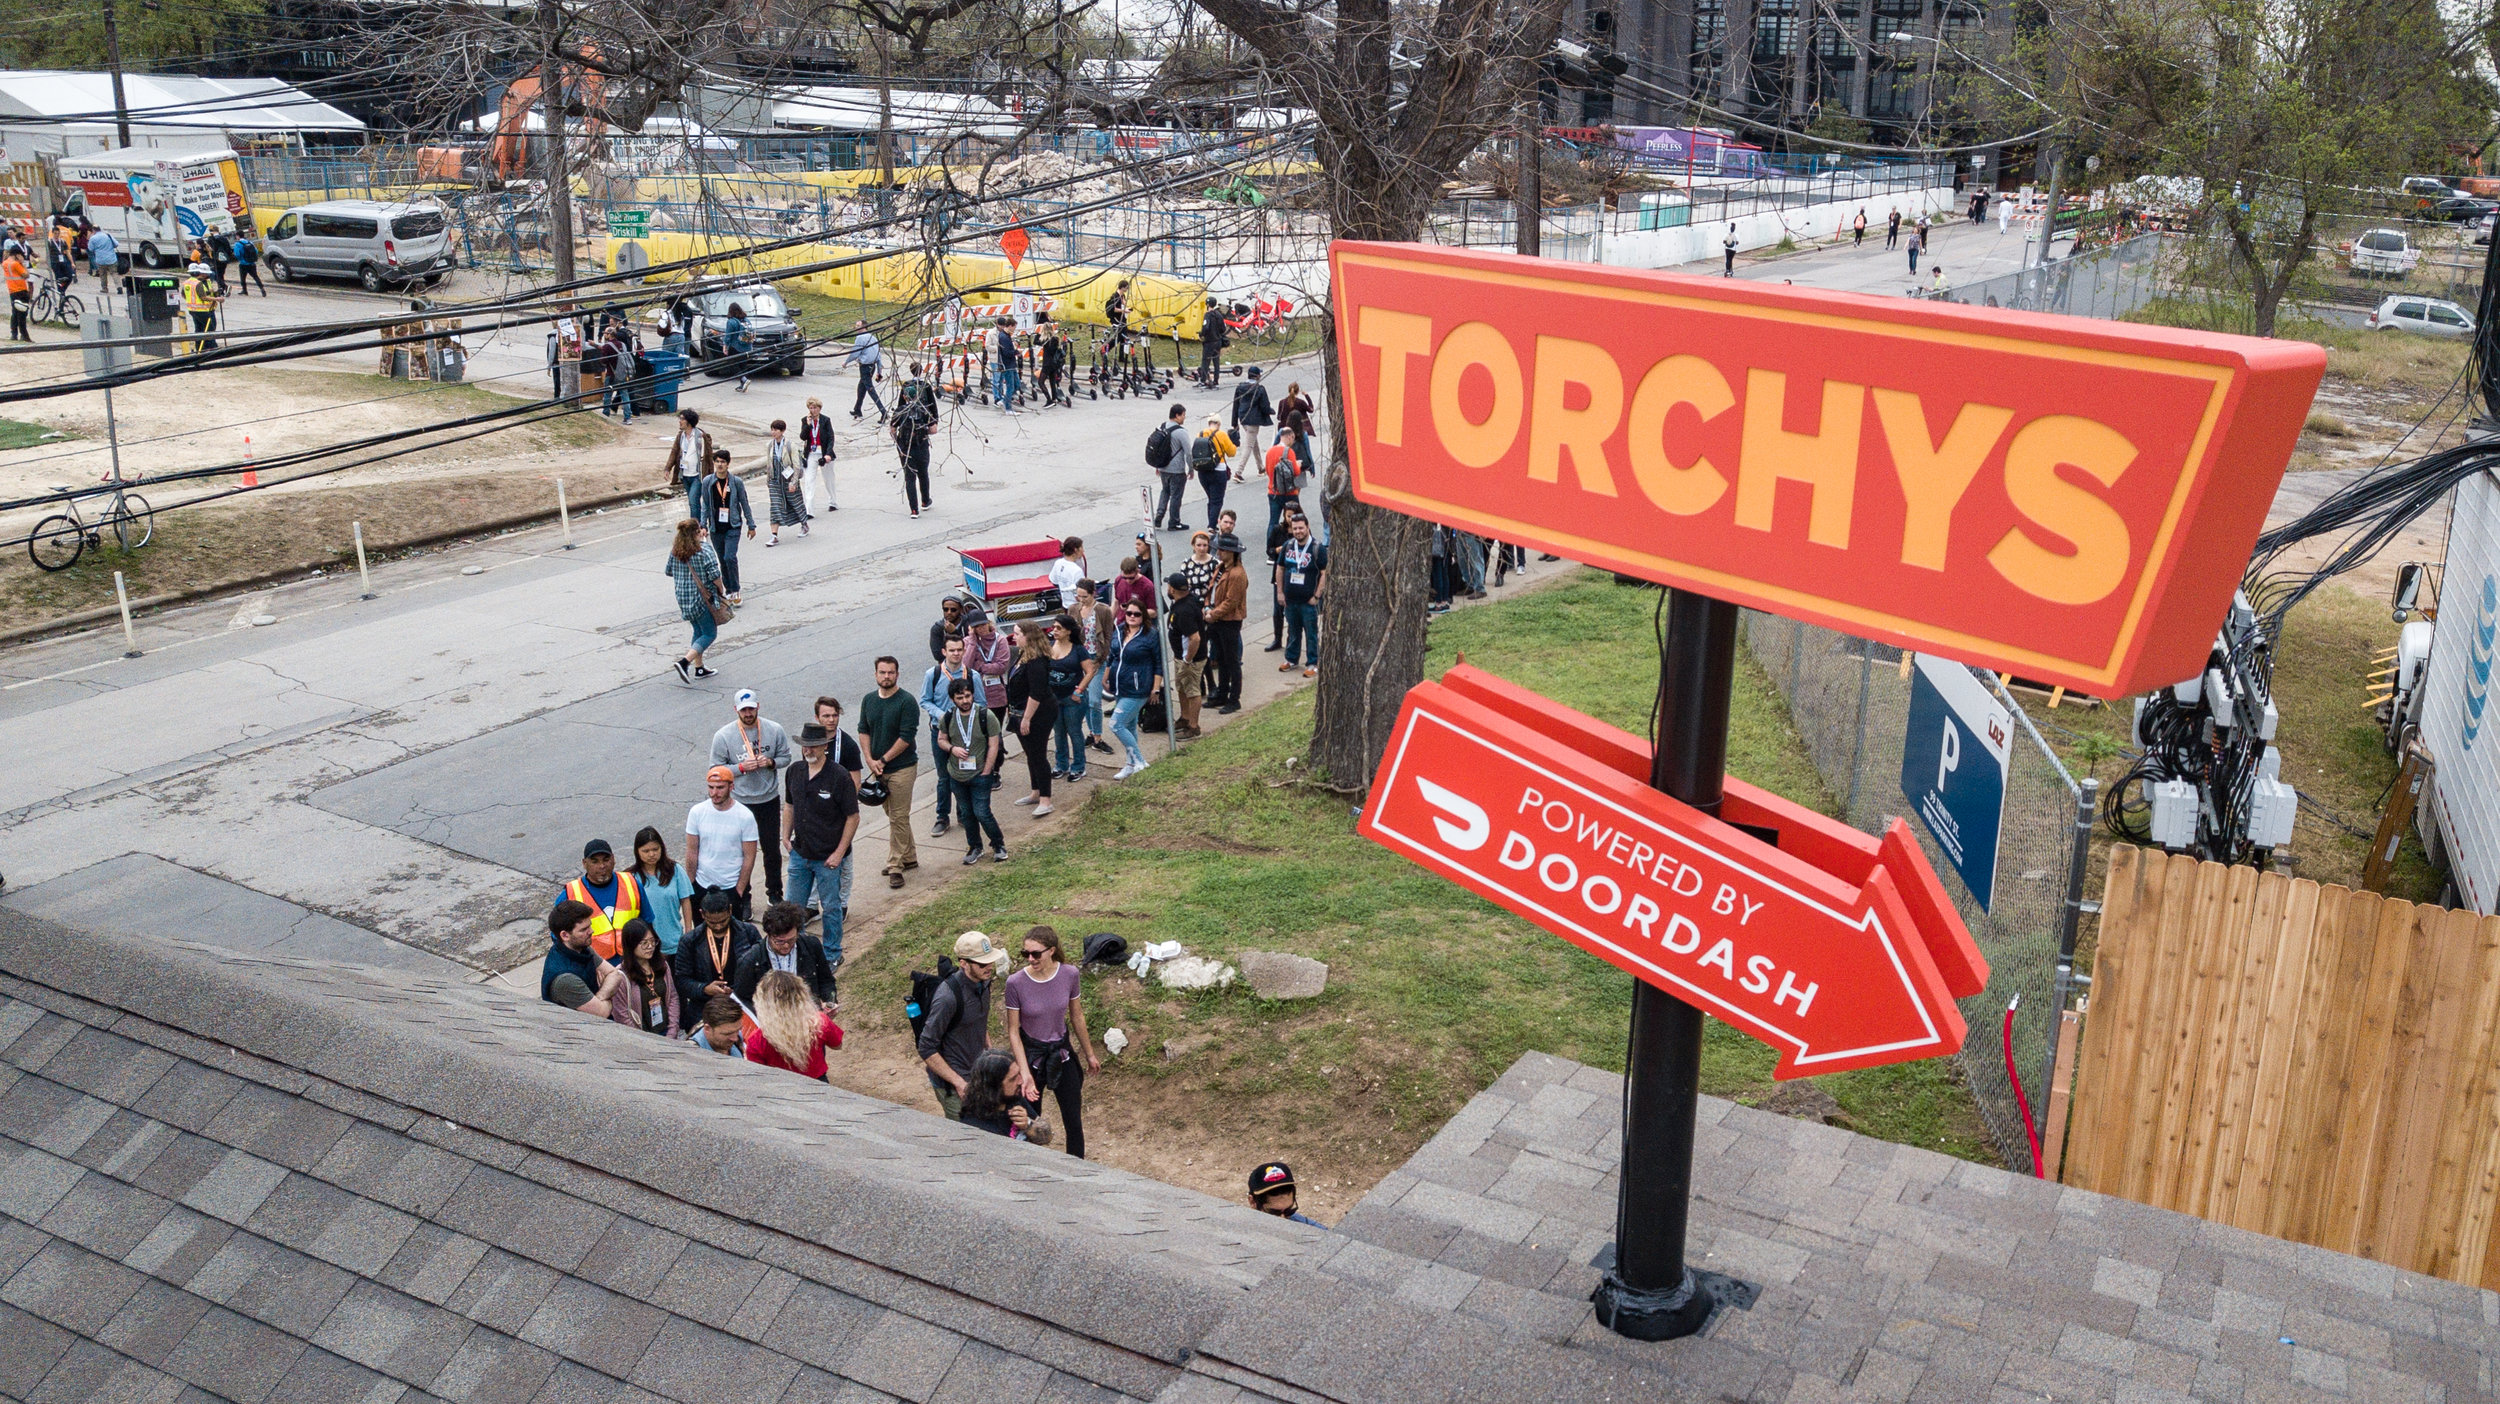 DoorDash x Torchys   Working alongside  MediaMonks  Kennedy Creative Events partnered to create the perfect SXSW event with DoorDash and Torchy's Tacos. The set complete with a tiny-house space, kitchen serving up tacos, and of course live music including some heavy hitters such as CeeLo Geen   Check Out Our Video HERE